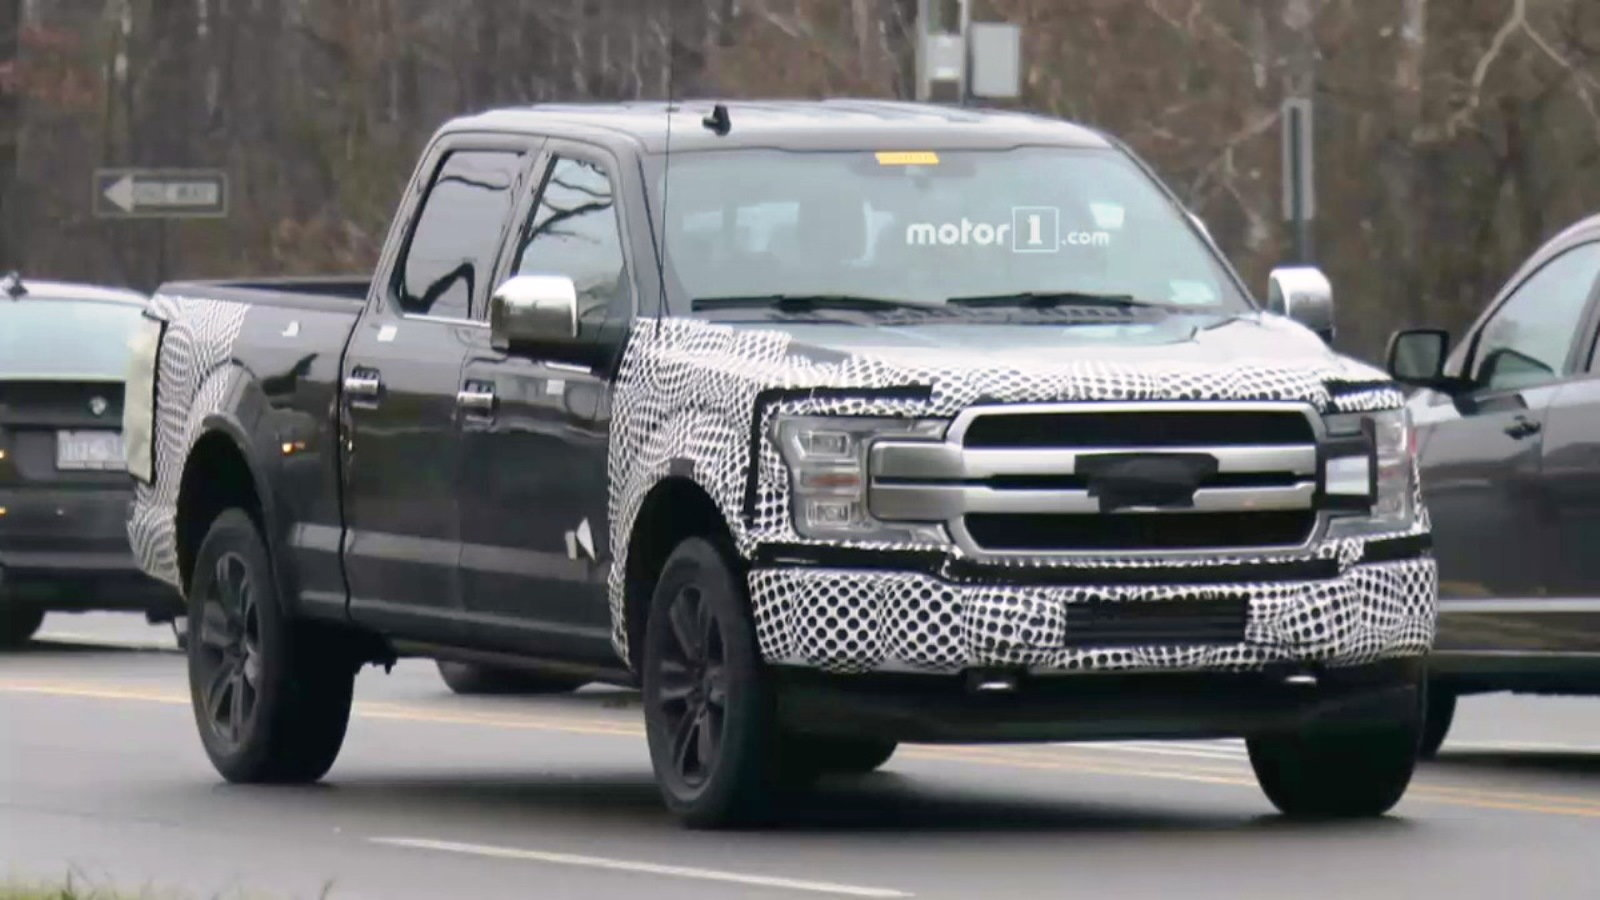 2018 Ford F-150 Hybrid (2.7l turbo/auto 10sp) - 20 city/25 highway?